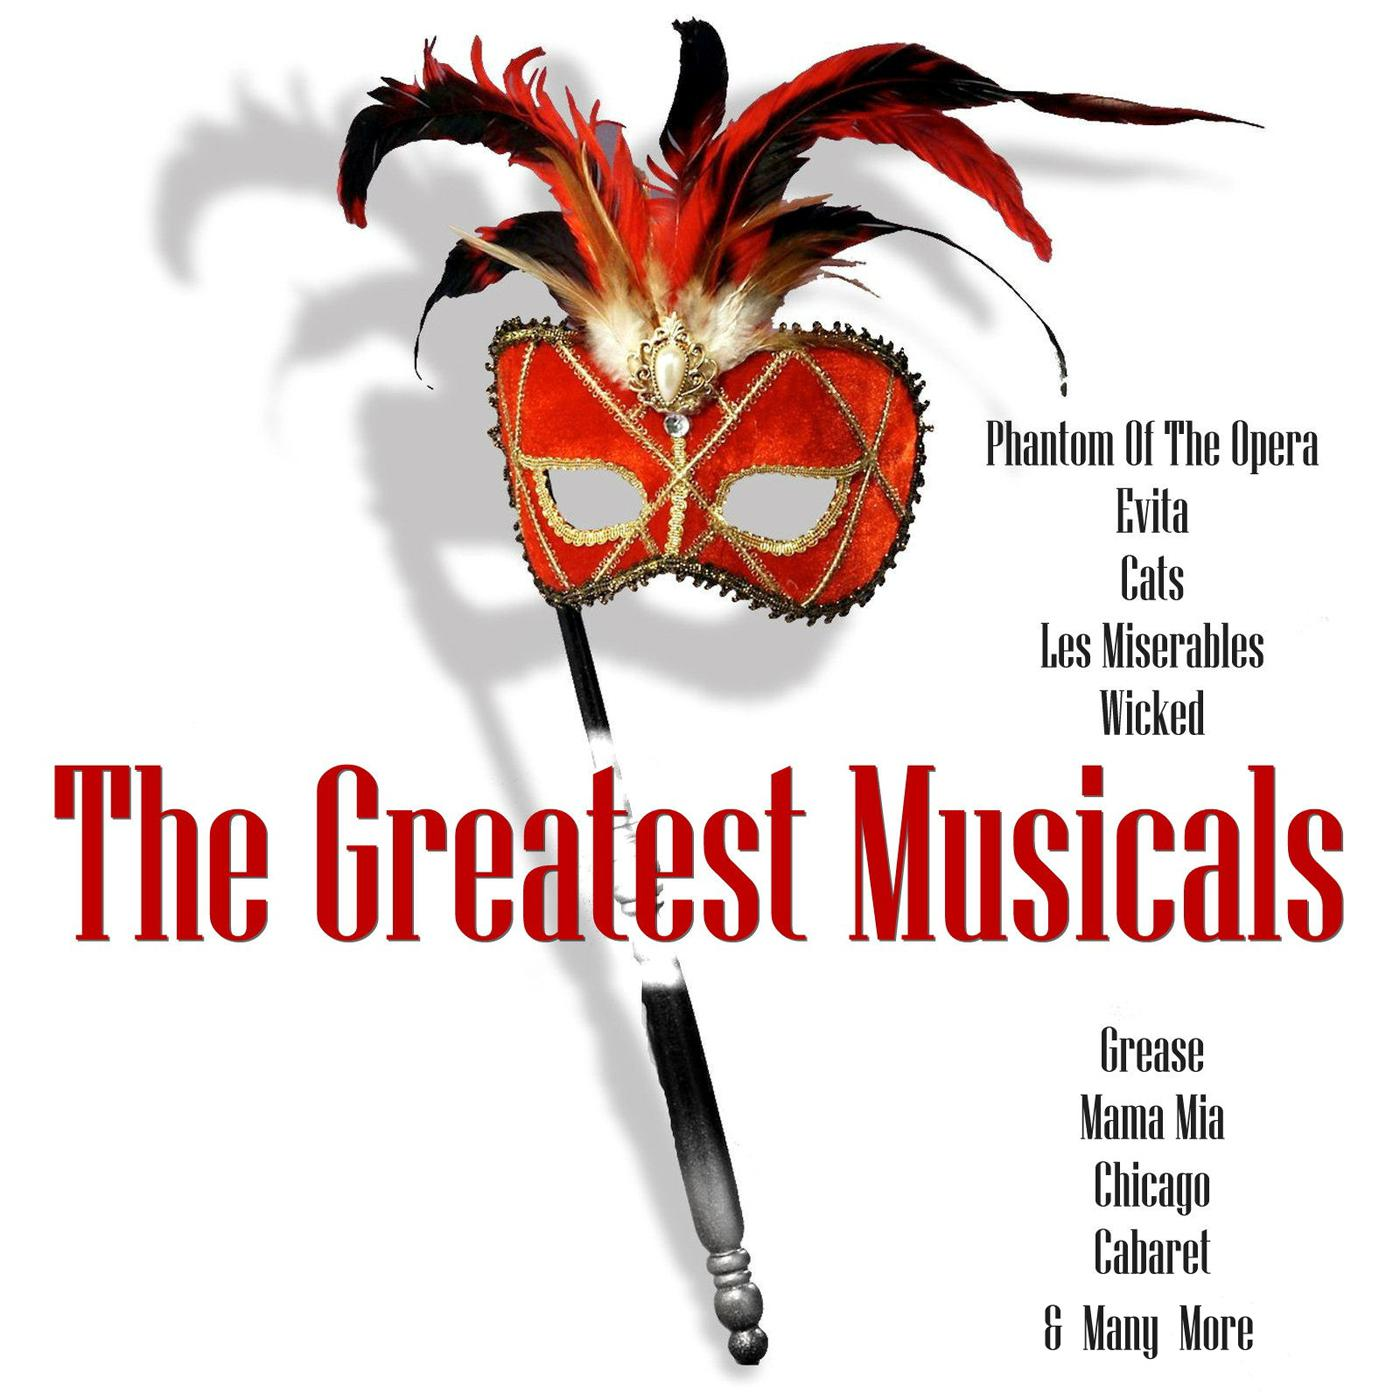 The Greatest Musicals